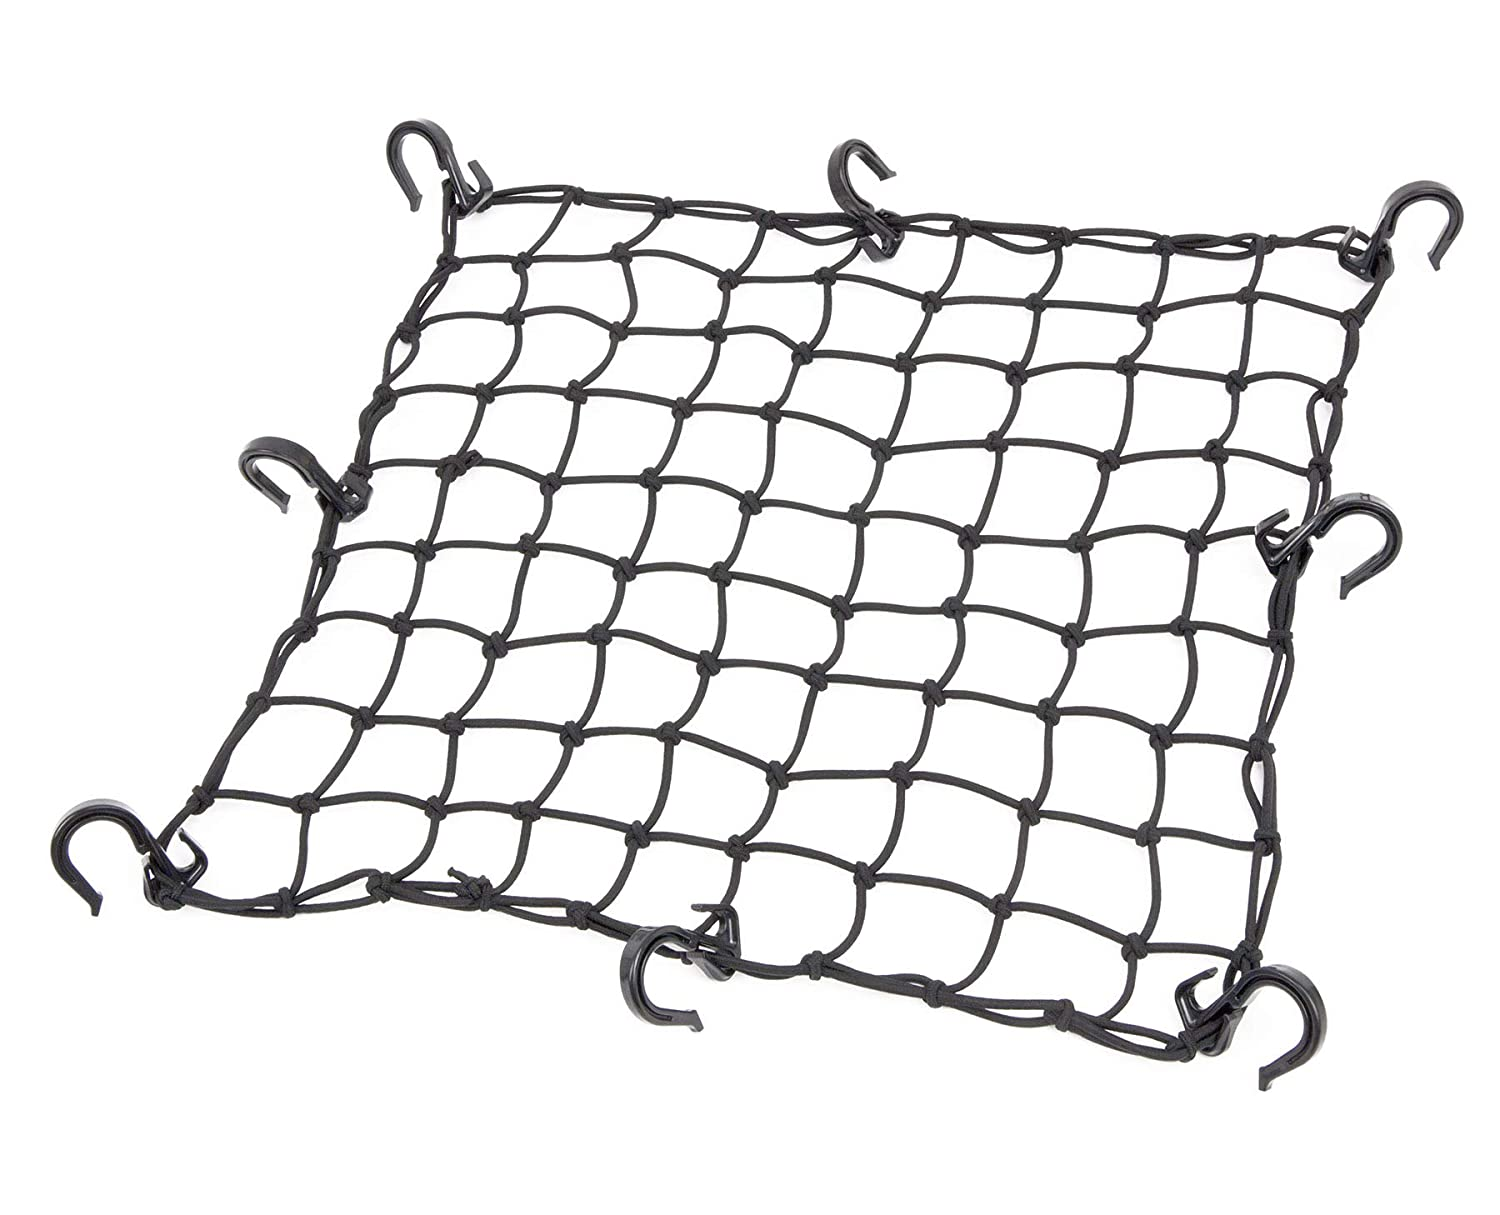 Black Powertye 17inx 17in Cargo Net with 8 Adjustable Hooks and Extra Tight 1.75in Mesh